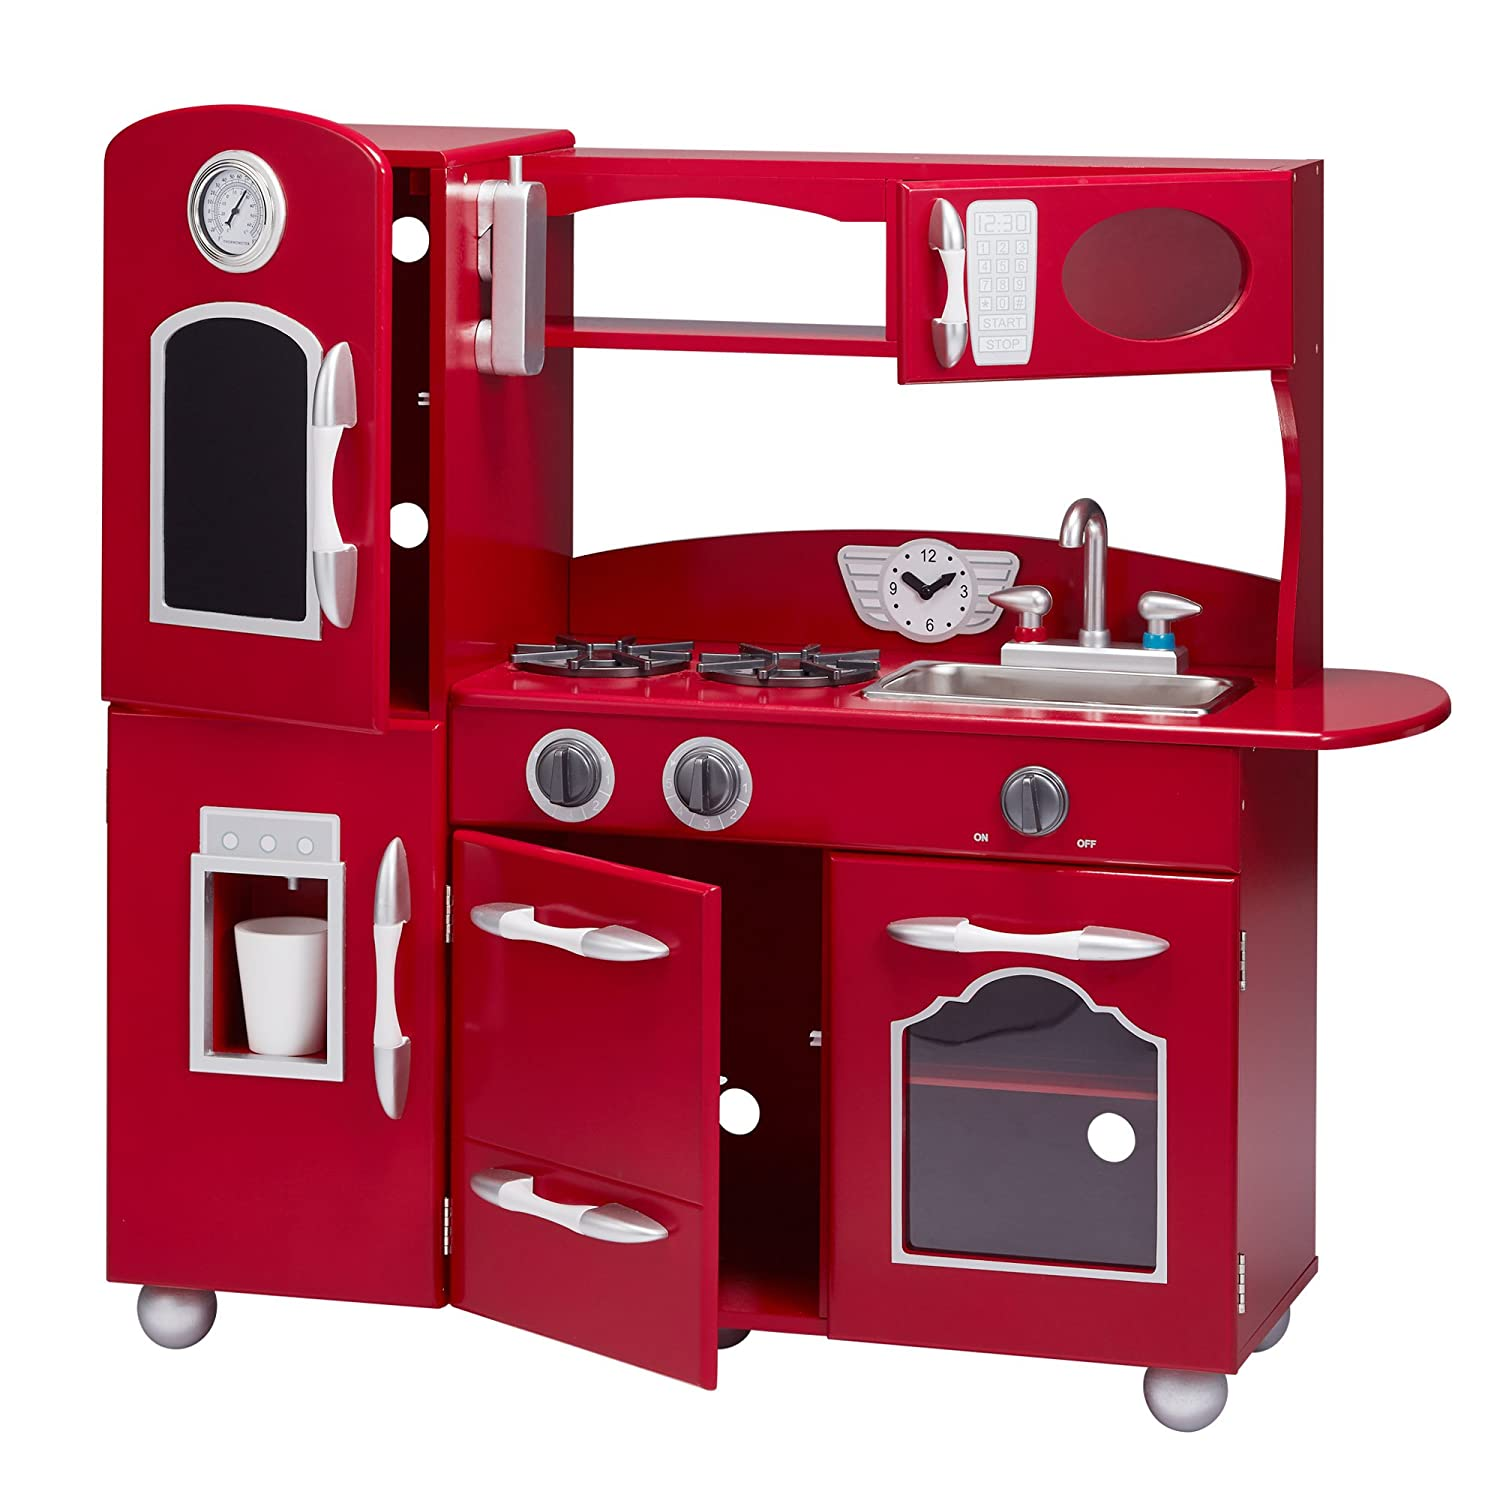 185aae6b43af Amazon.com: My Little Chef Teamson Kids Wooden Play Kitchen Set (1 Piece),  Red, One Size: Toys & Games